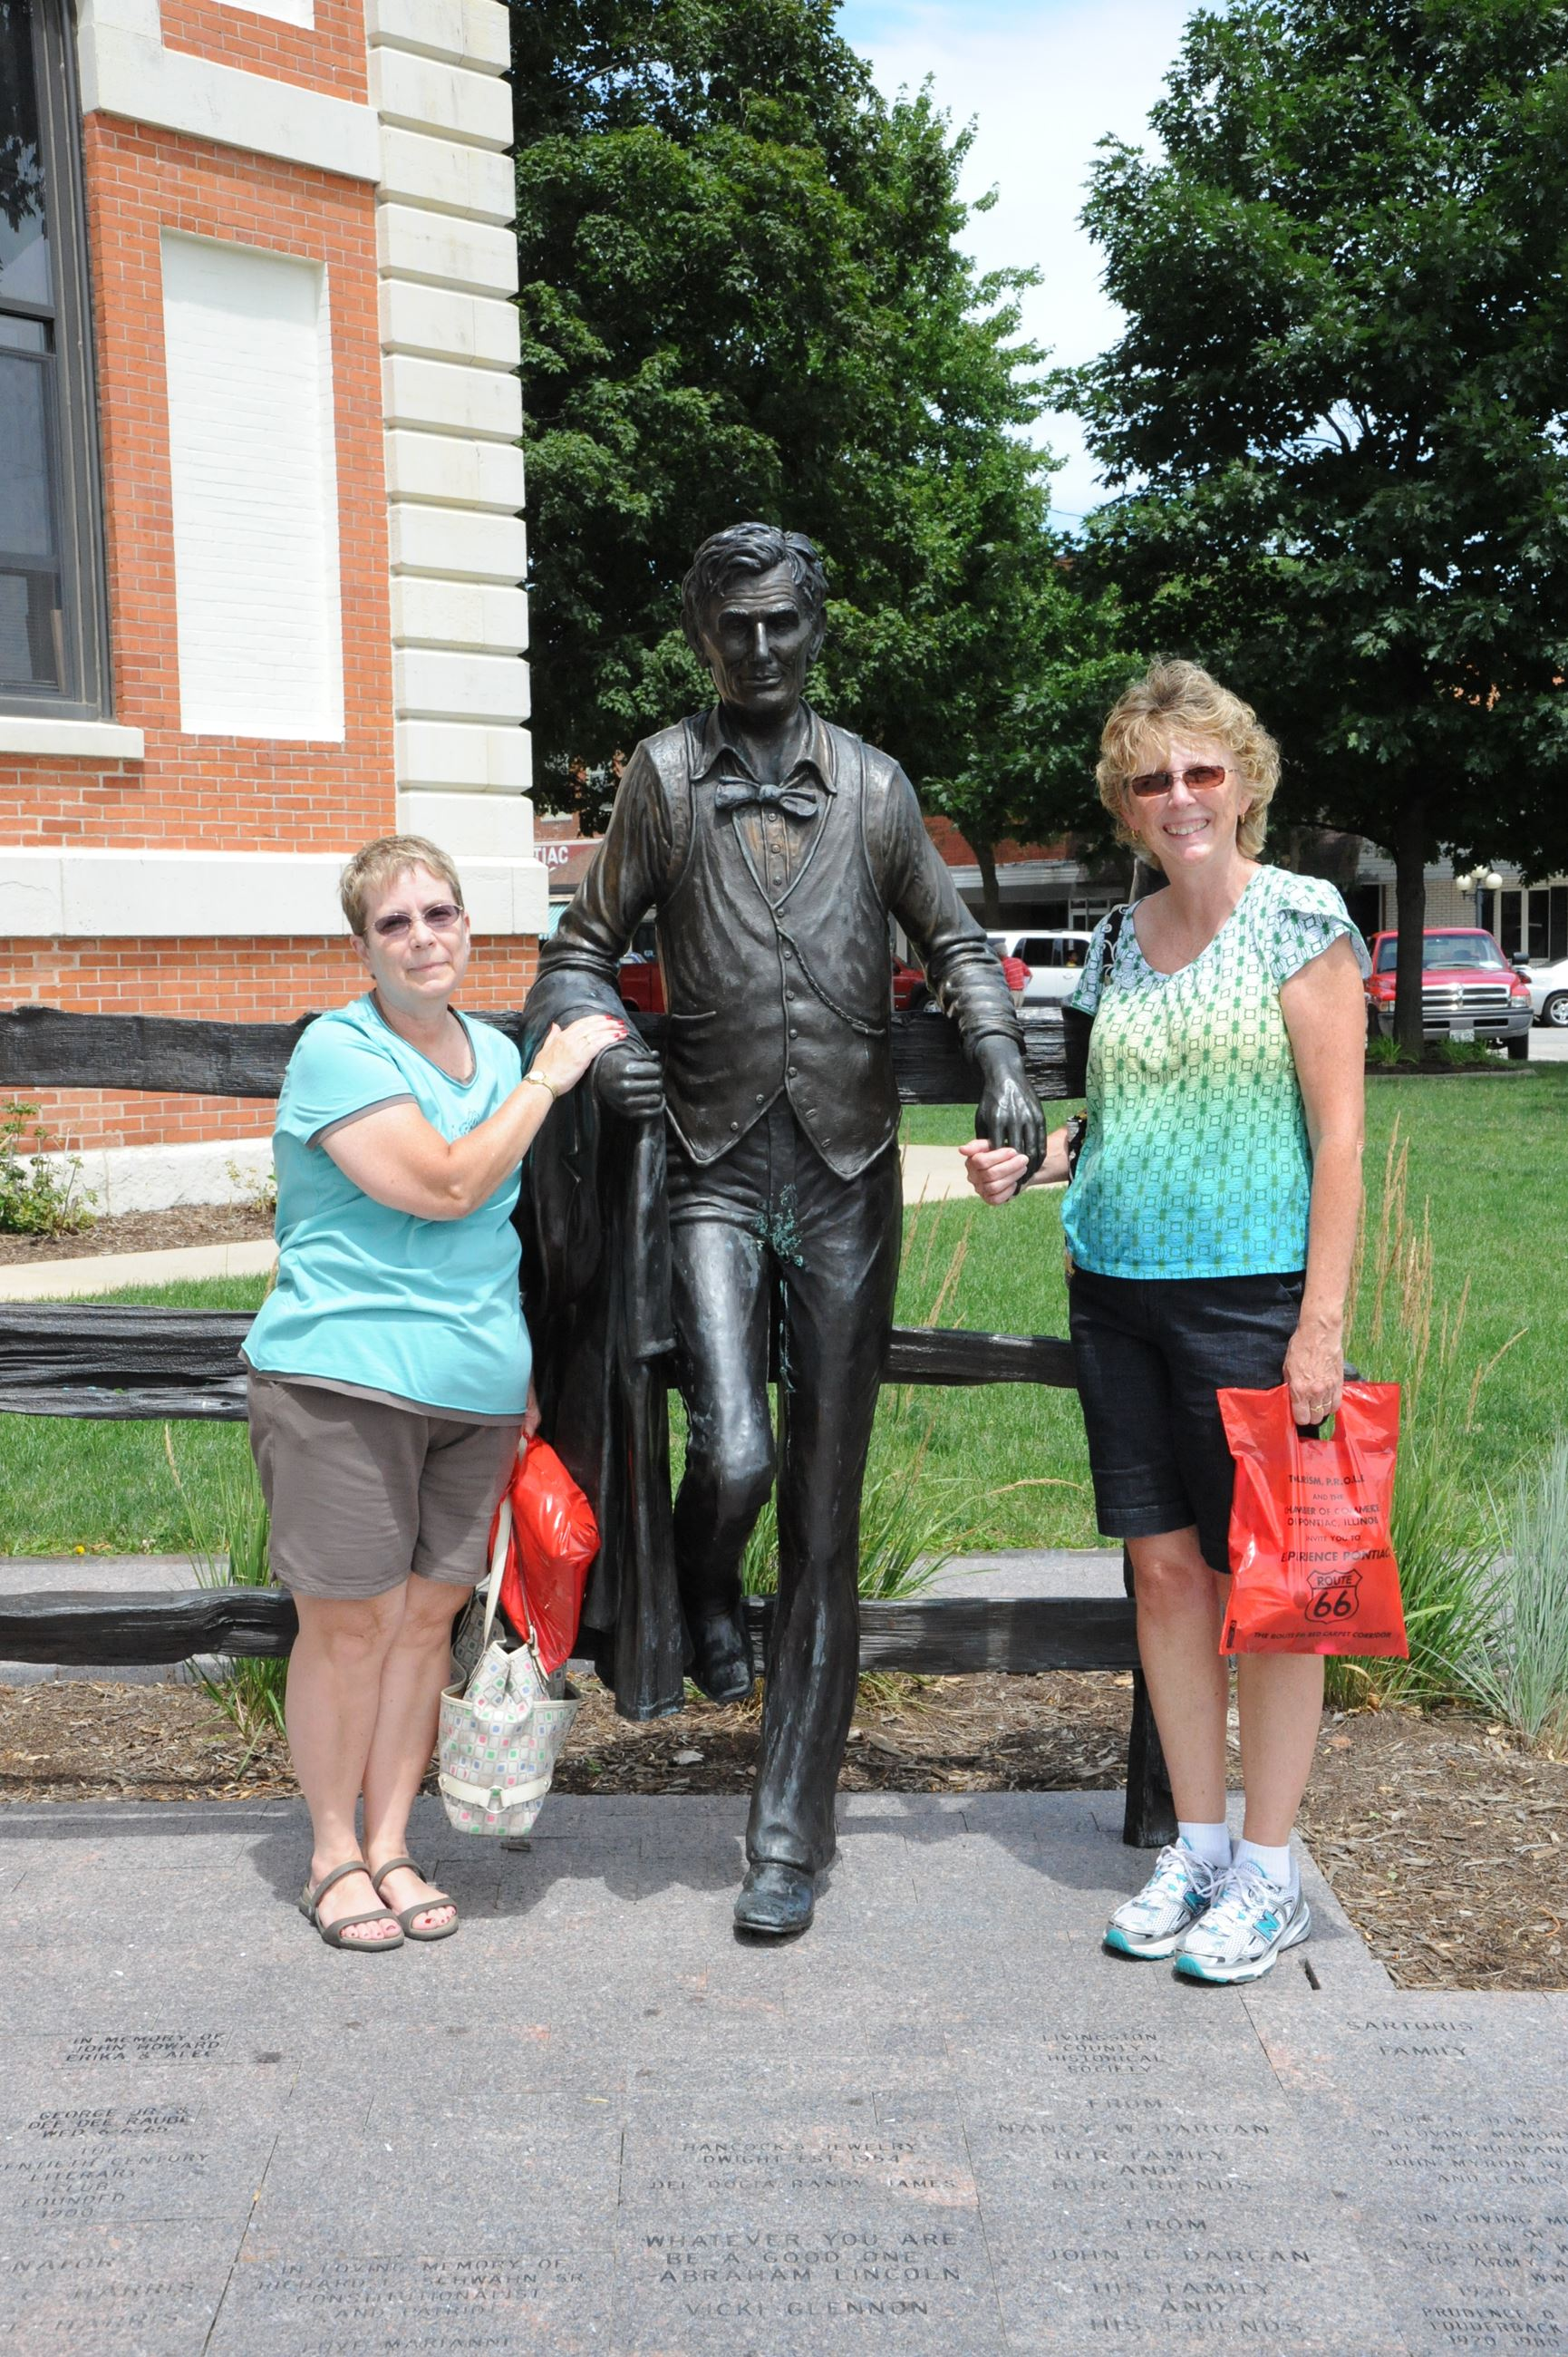 Visitors at Lincoln Statue